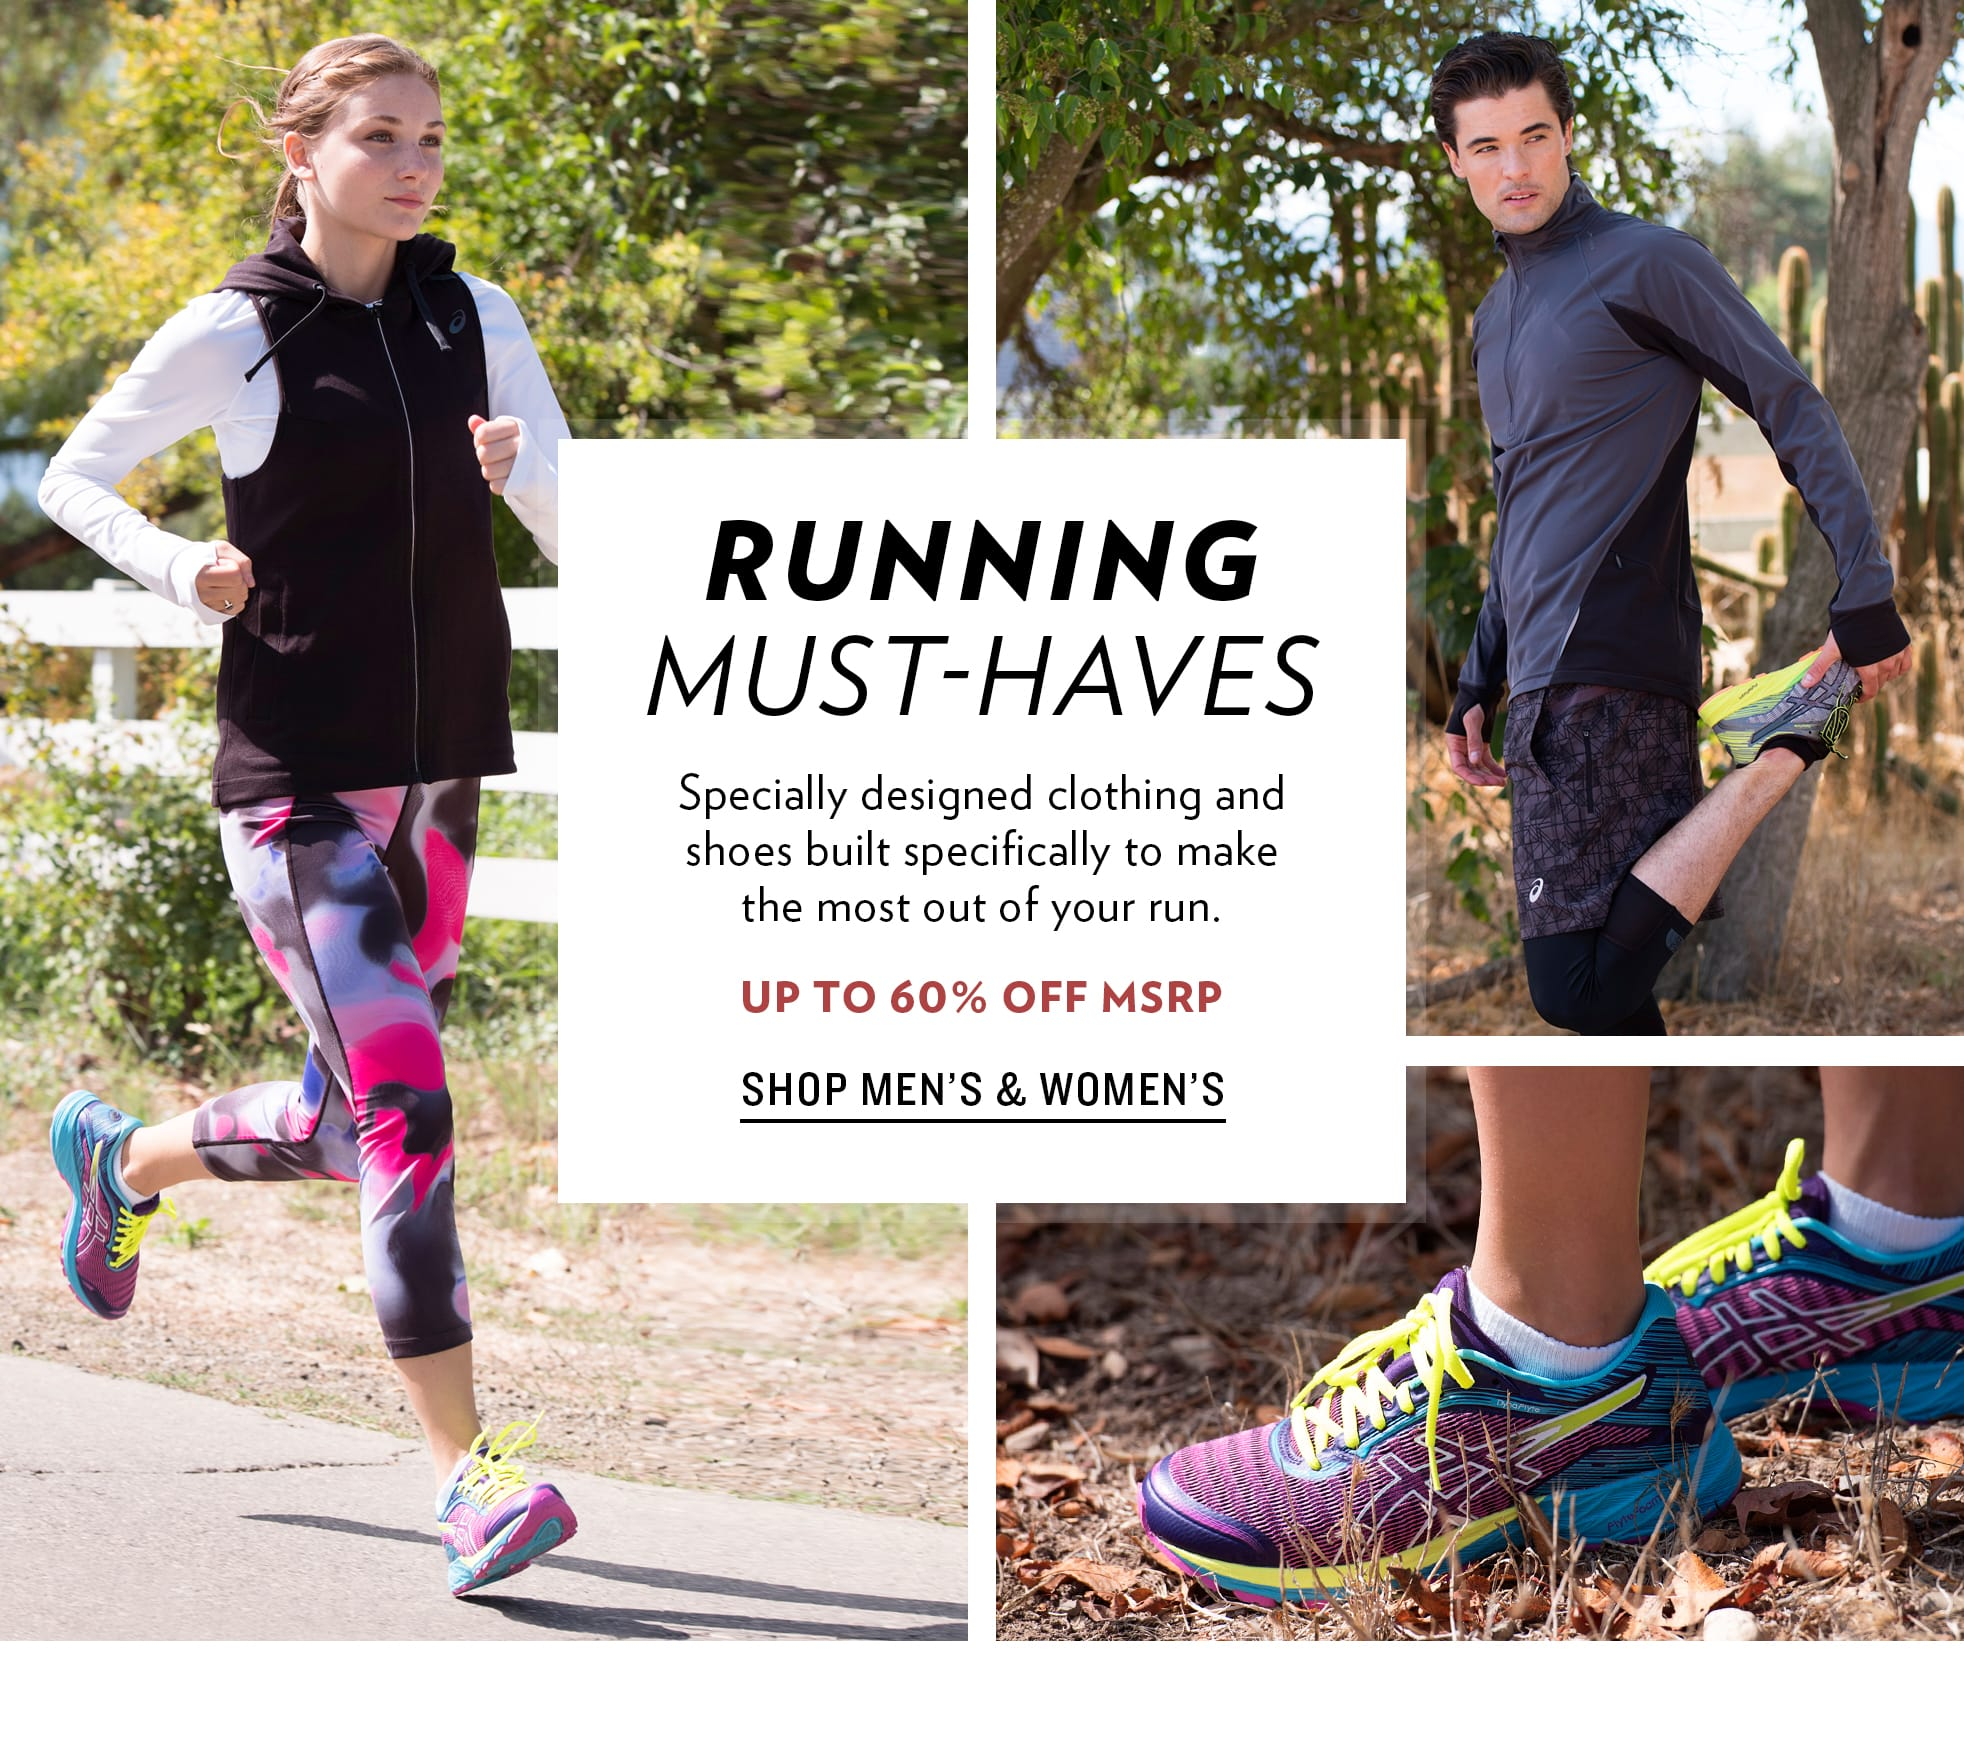 Running Must-Haves